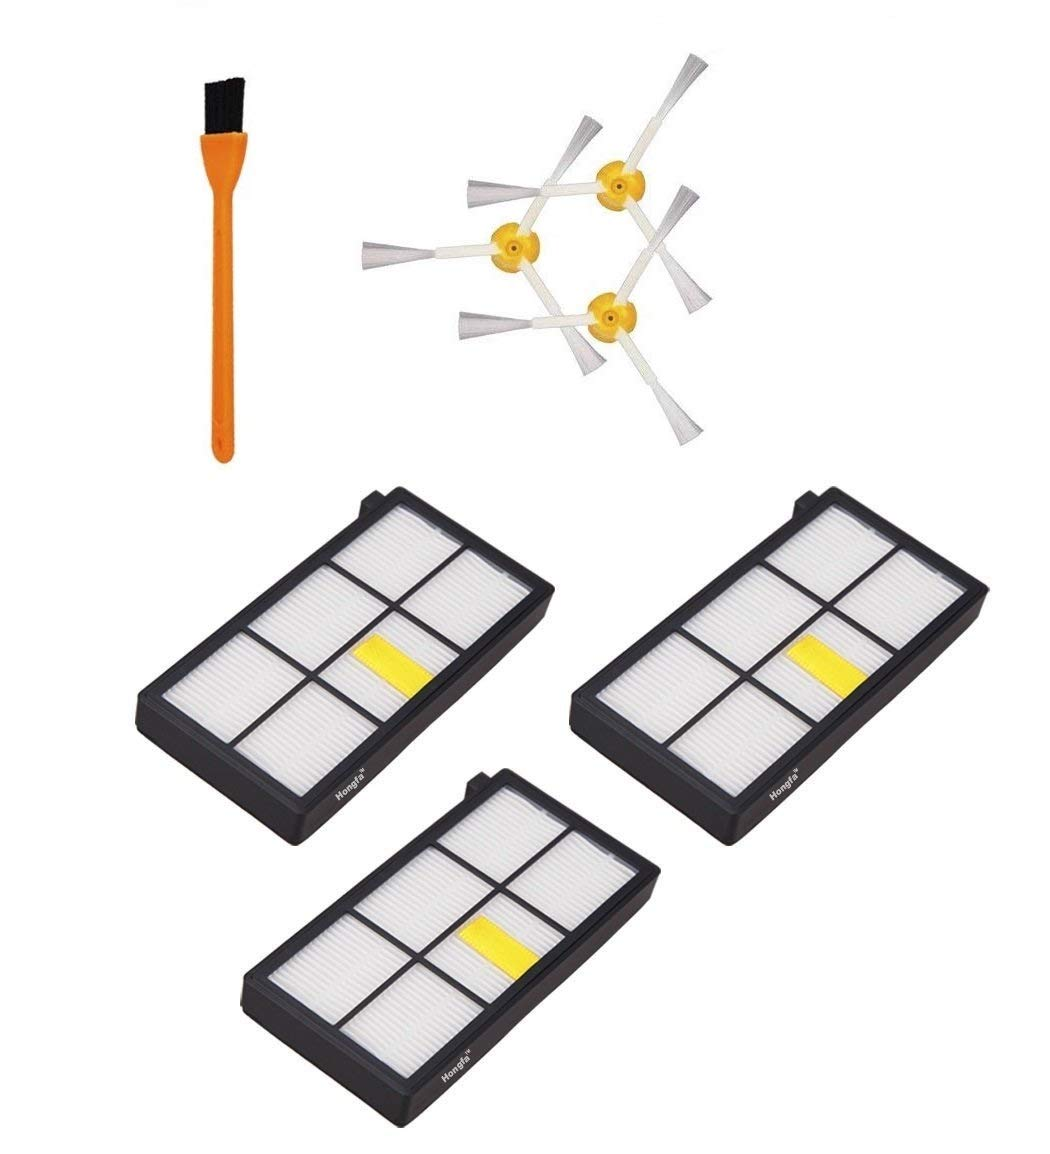 Hongfa 3pcs 980 Hepa Filters Compatible with iRobot Roomba 980 860 880 870 Robotic Vacuum Cleaner and 3pcs Roomba Side Brushes (800 900 Series) Replacement Parts Accessories